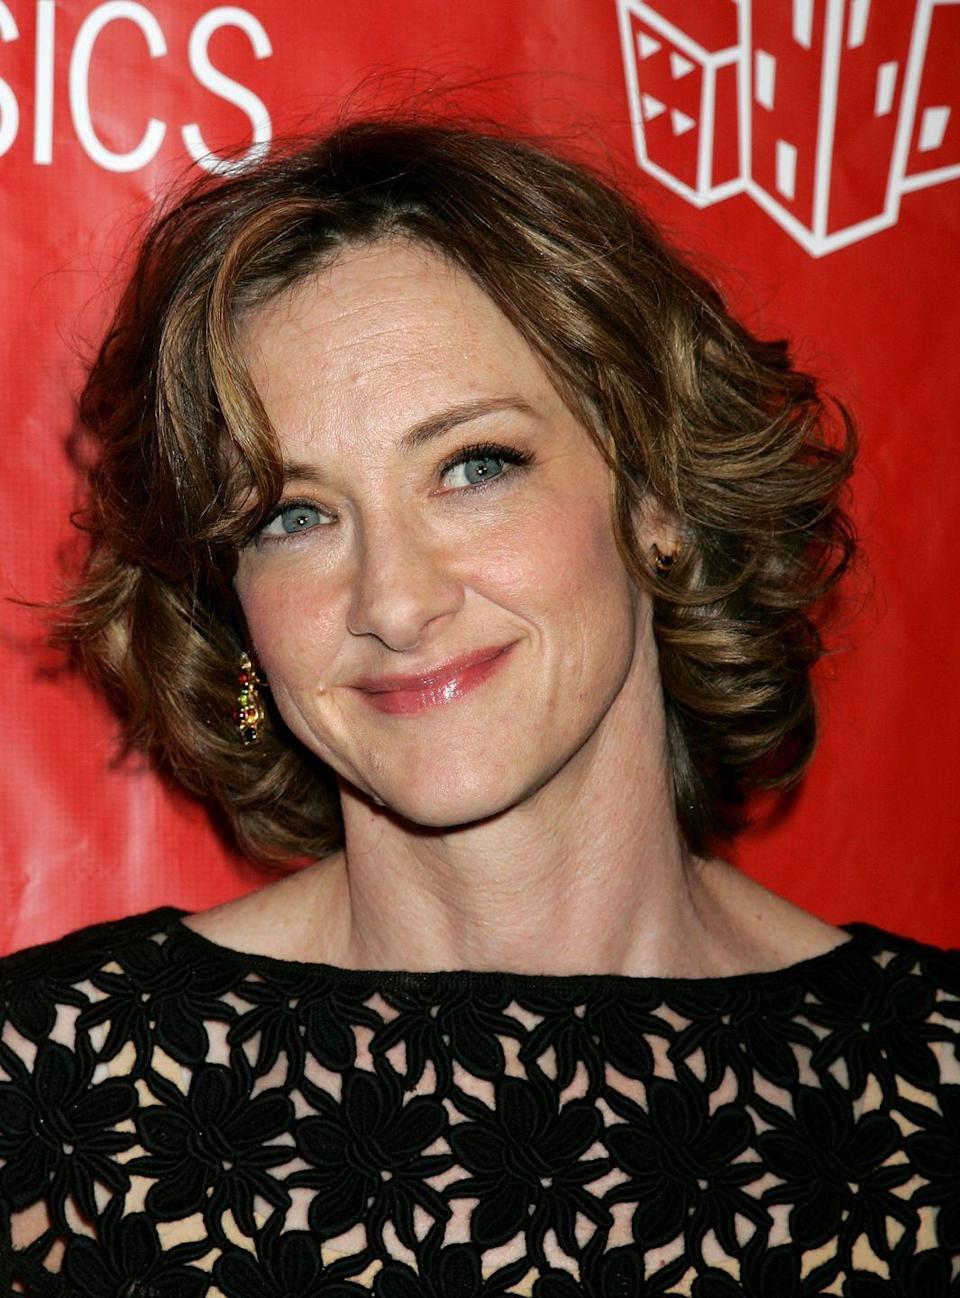 <p>Like many others on this list, Cusack recovered well after getting fired from <em>SNL</em>. She went on to earn Oscar nominations for her roles in <em>Working Girl</em> and <em>In & Out</em>, and was nominated for an Emmy for her role in Showtime's <em>Shameless</em> four times before winning in 2015.</p>